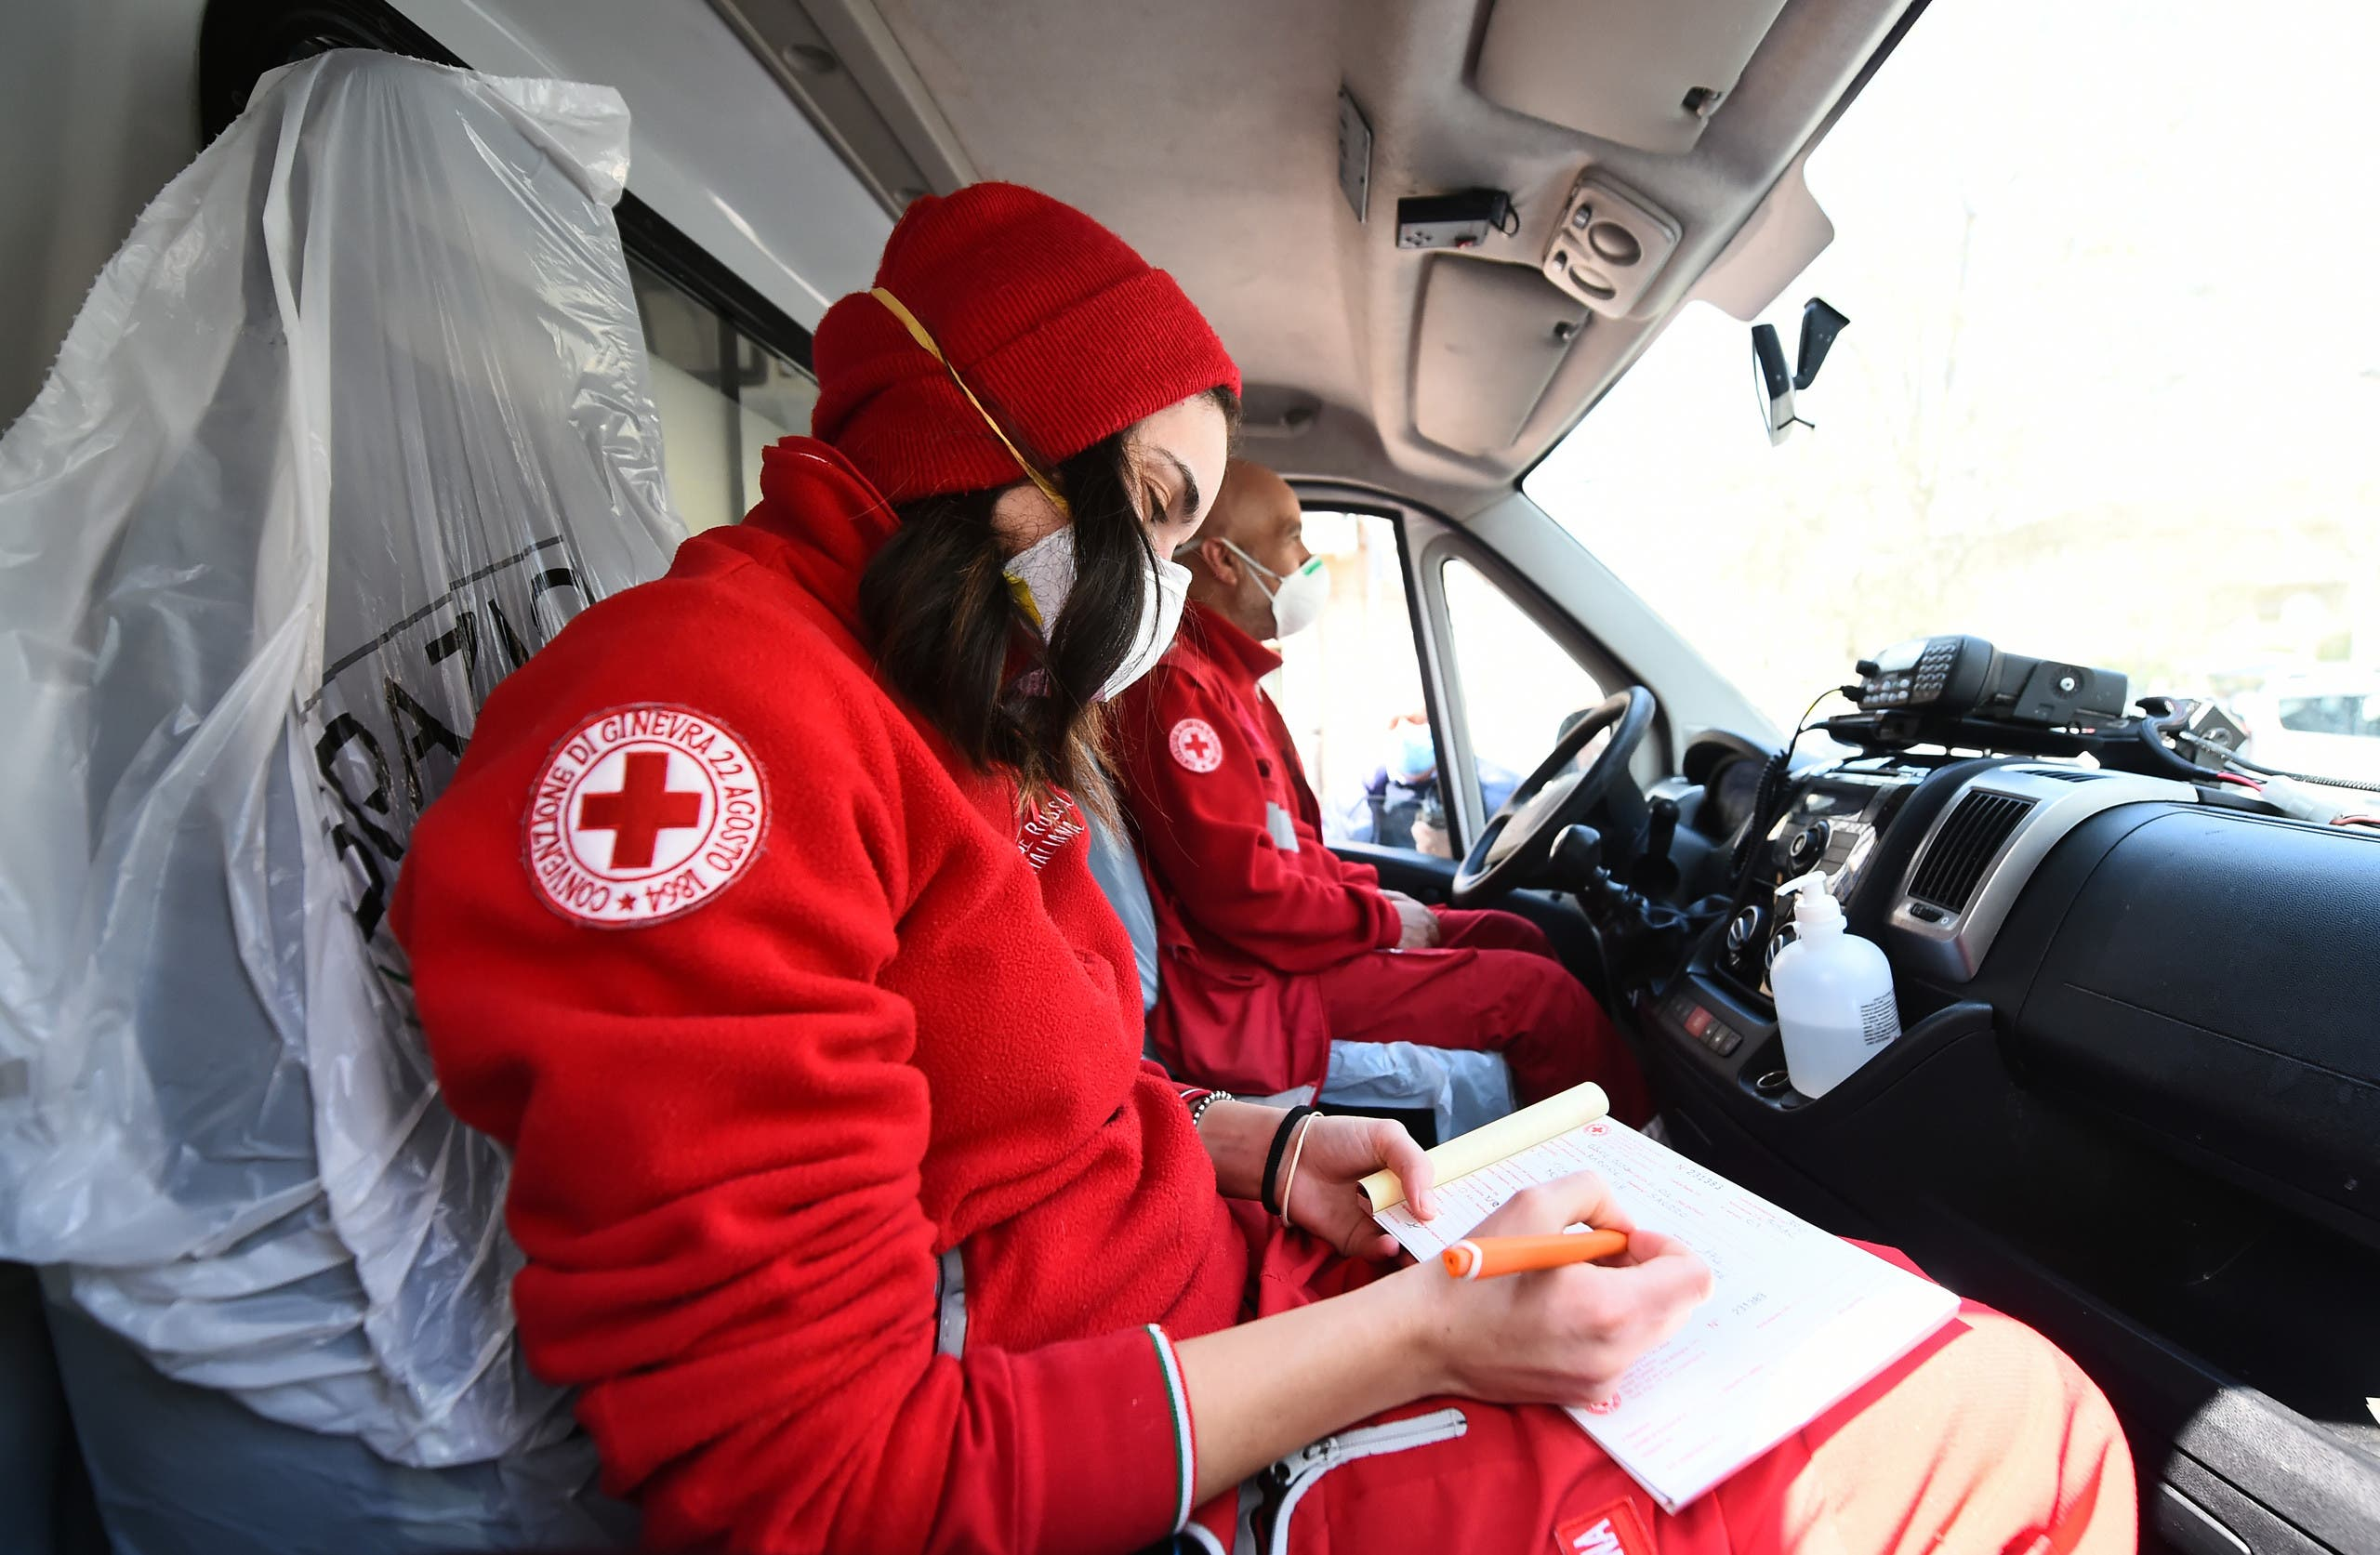 Members of the Red Cross sit inside a vehicle outside the Molinette Hospital on Palm Sunday, during the coronavirus outbreak, in Turin, Italy April 5, 2020. (Reuters)